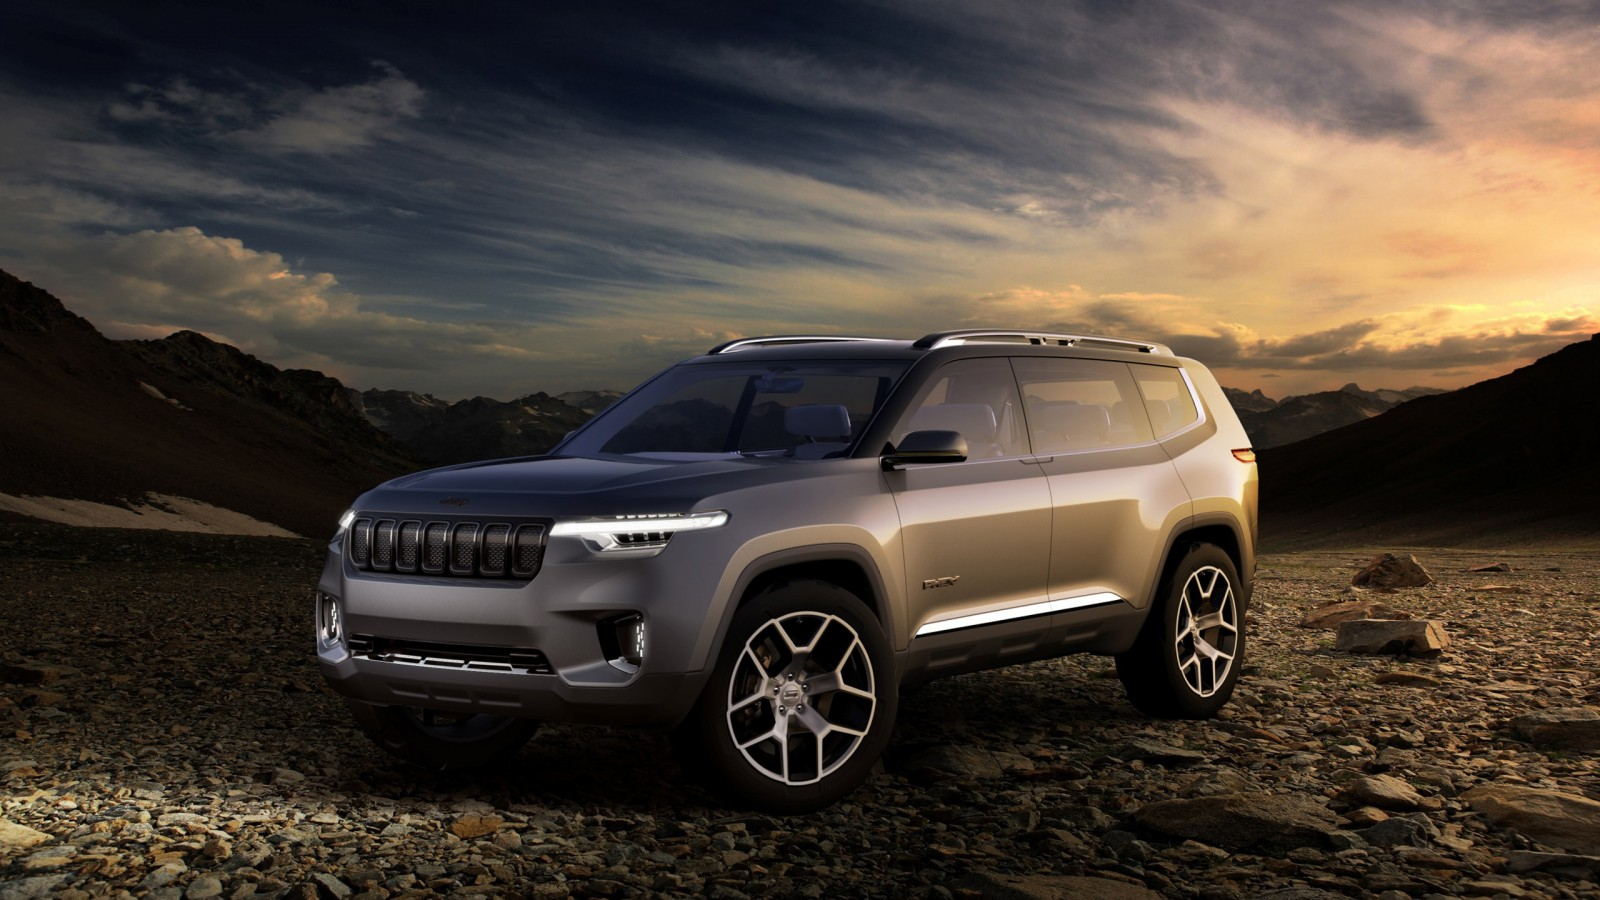 Jeep Yuntu Concept Wallpaper | HD Car Wallpapers | ID #7744